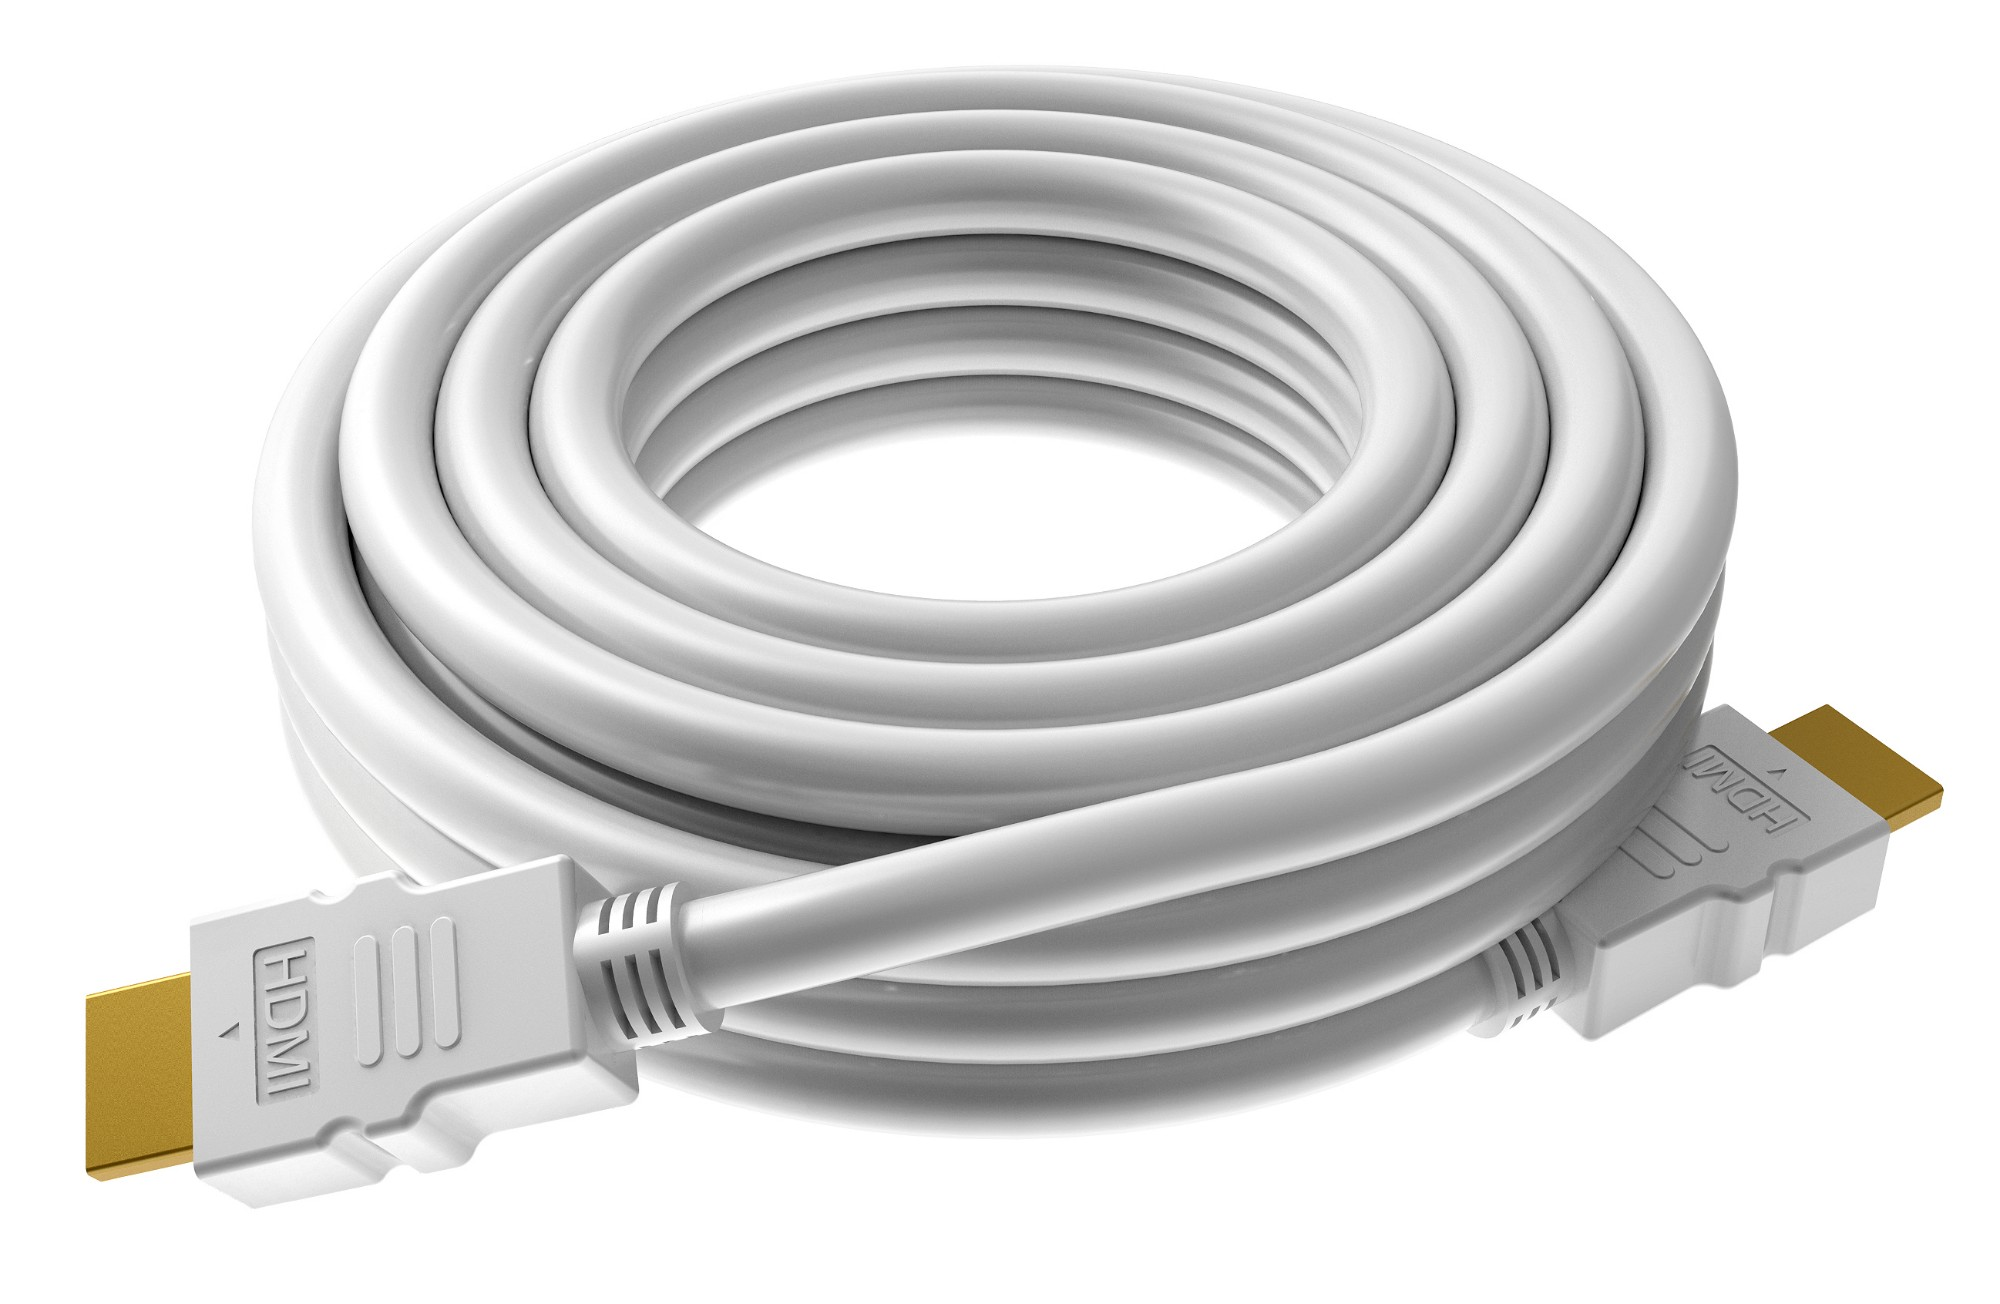 Vision Tc 15mhdmi 15m Hdmi Type A Standard Network Cable Wiring Company White Demand Driven